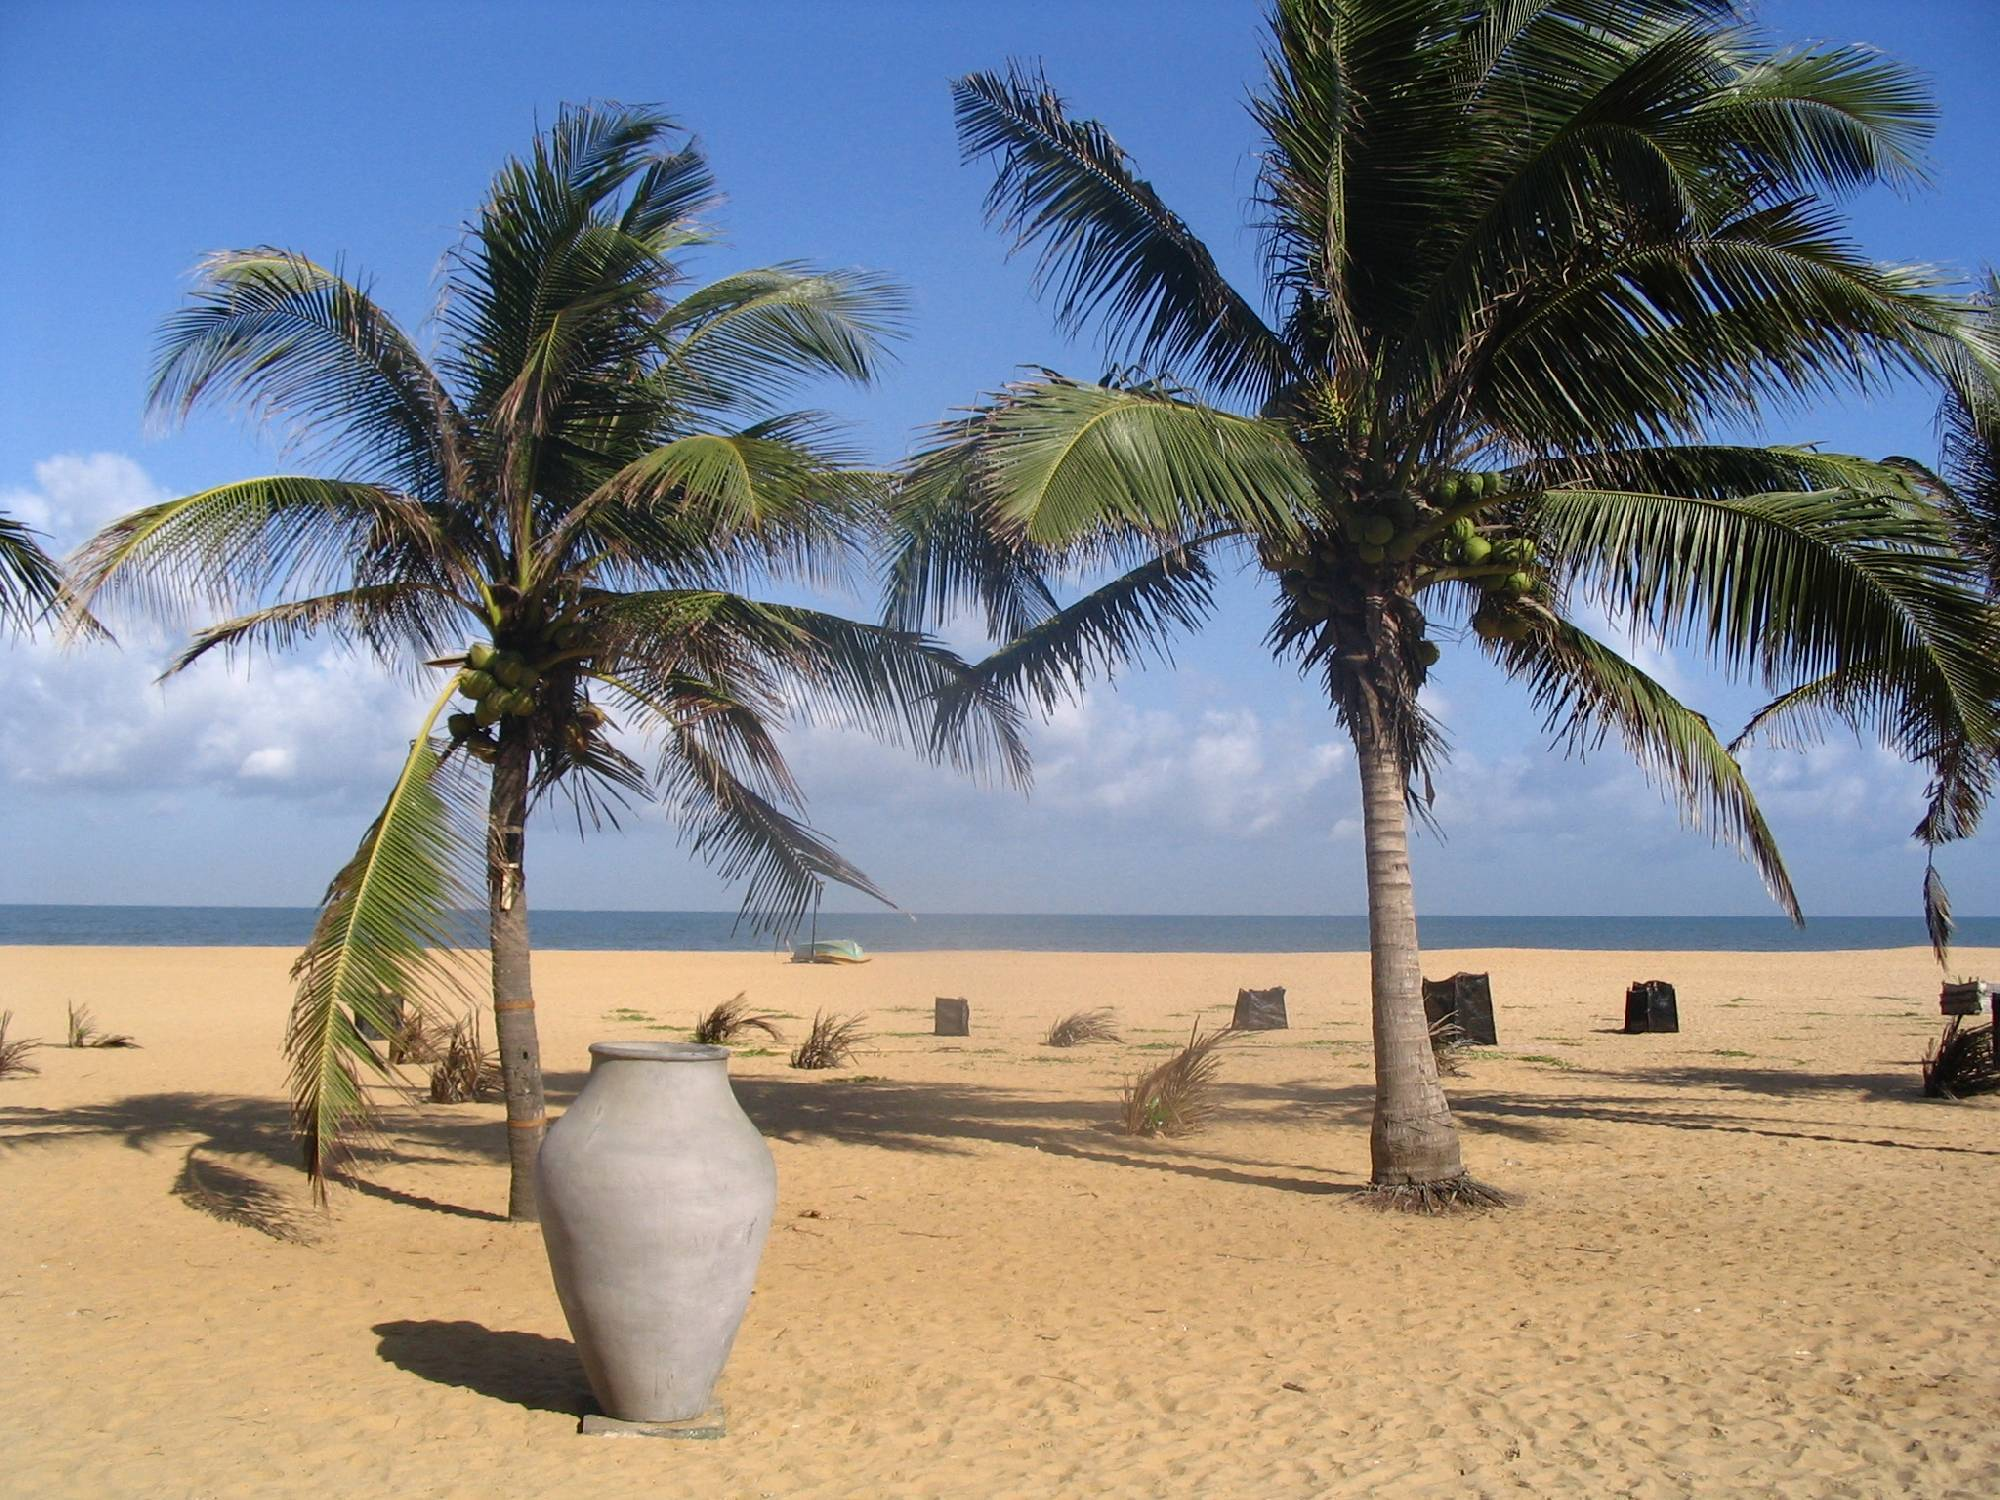 Negombo, 35 km north of Colombo is known for its centuries old busy fish markets and long, sandy beaches. A westernised, vibrant city and one of the major tourist destinations of Sri Lanka will host PAS 2017